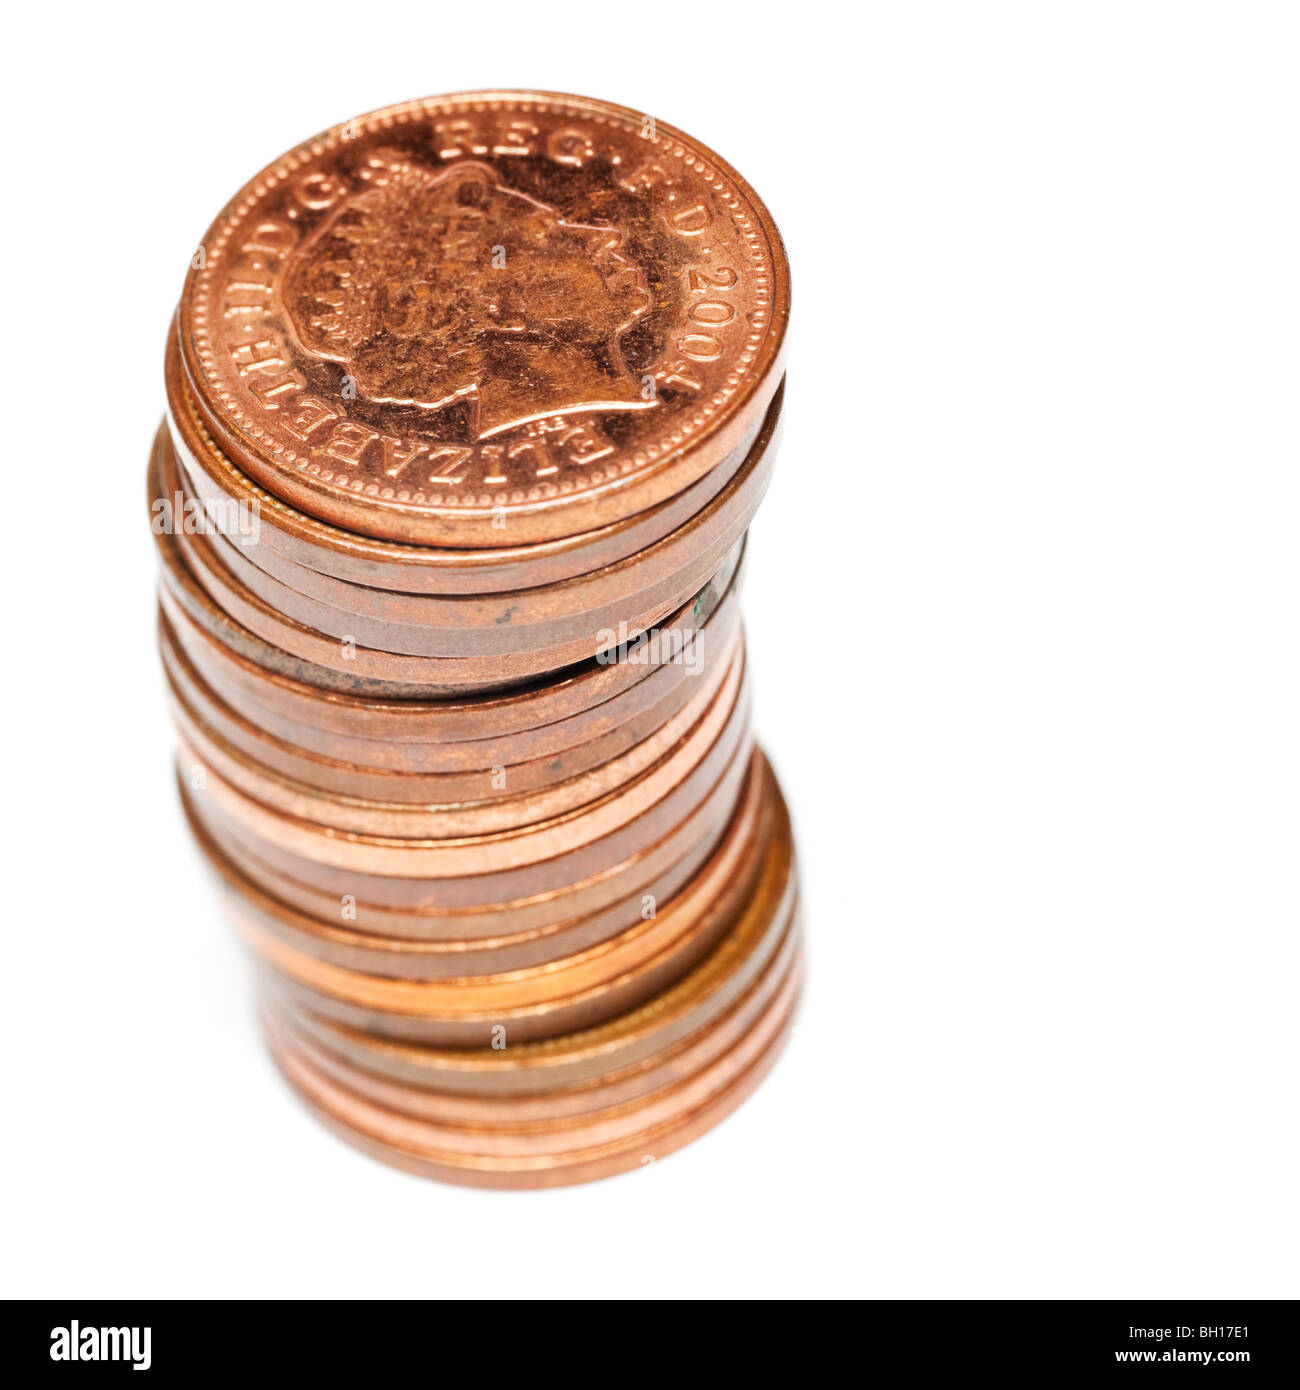 Stack of British one pence coins pieces - macro close up selective focus - Stock Image